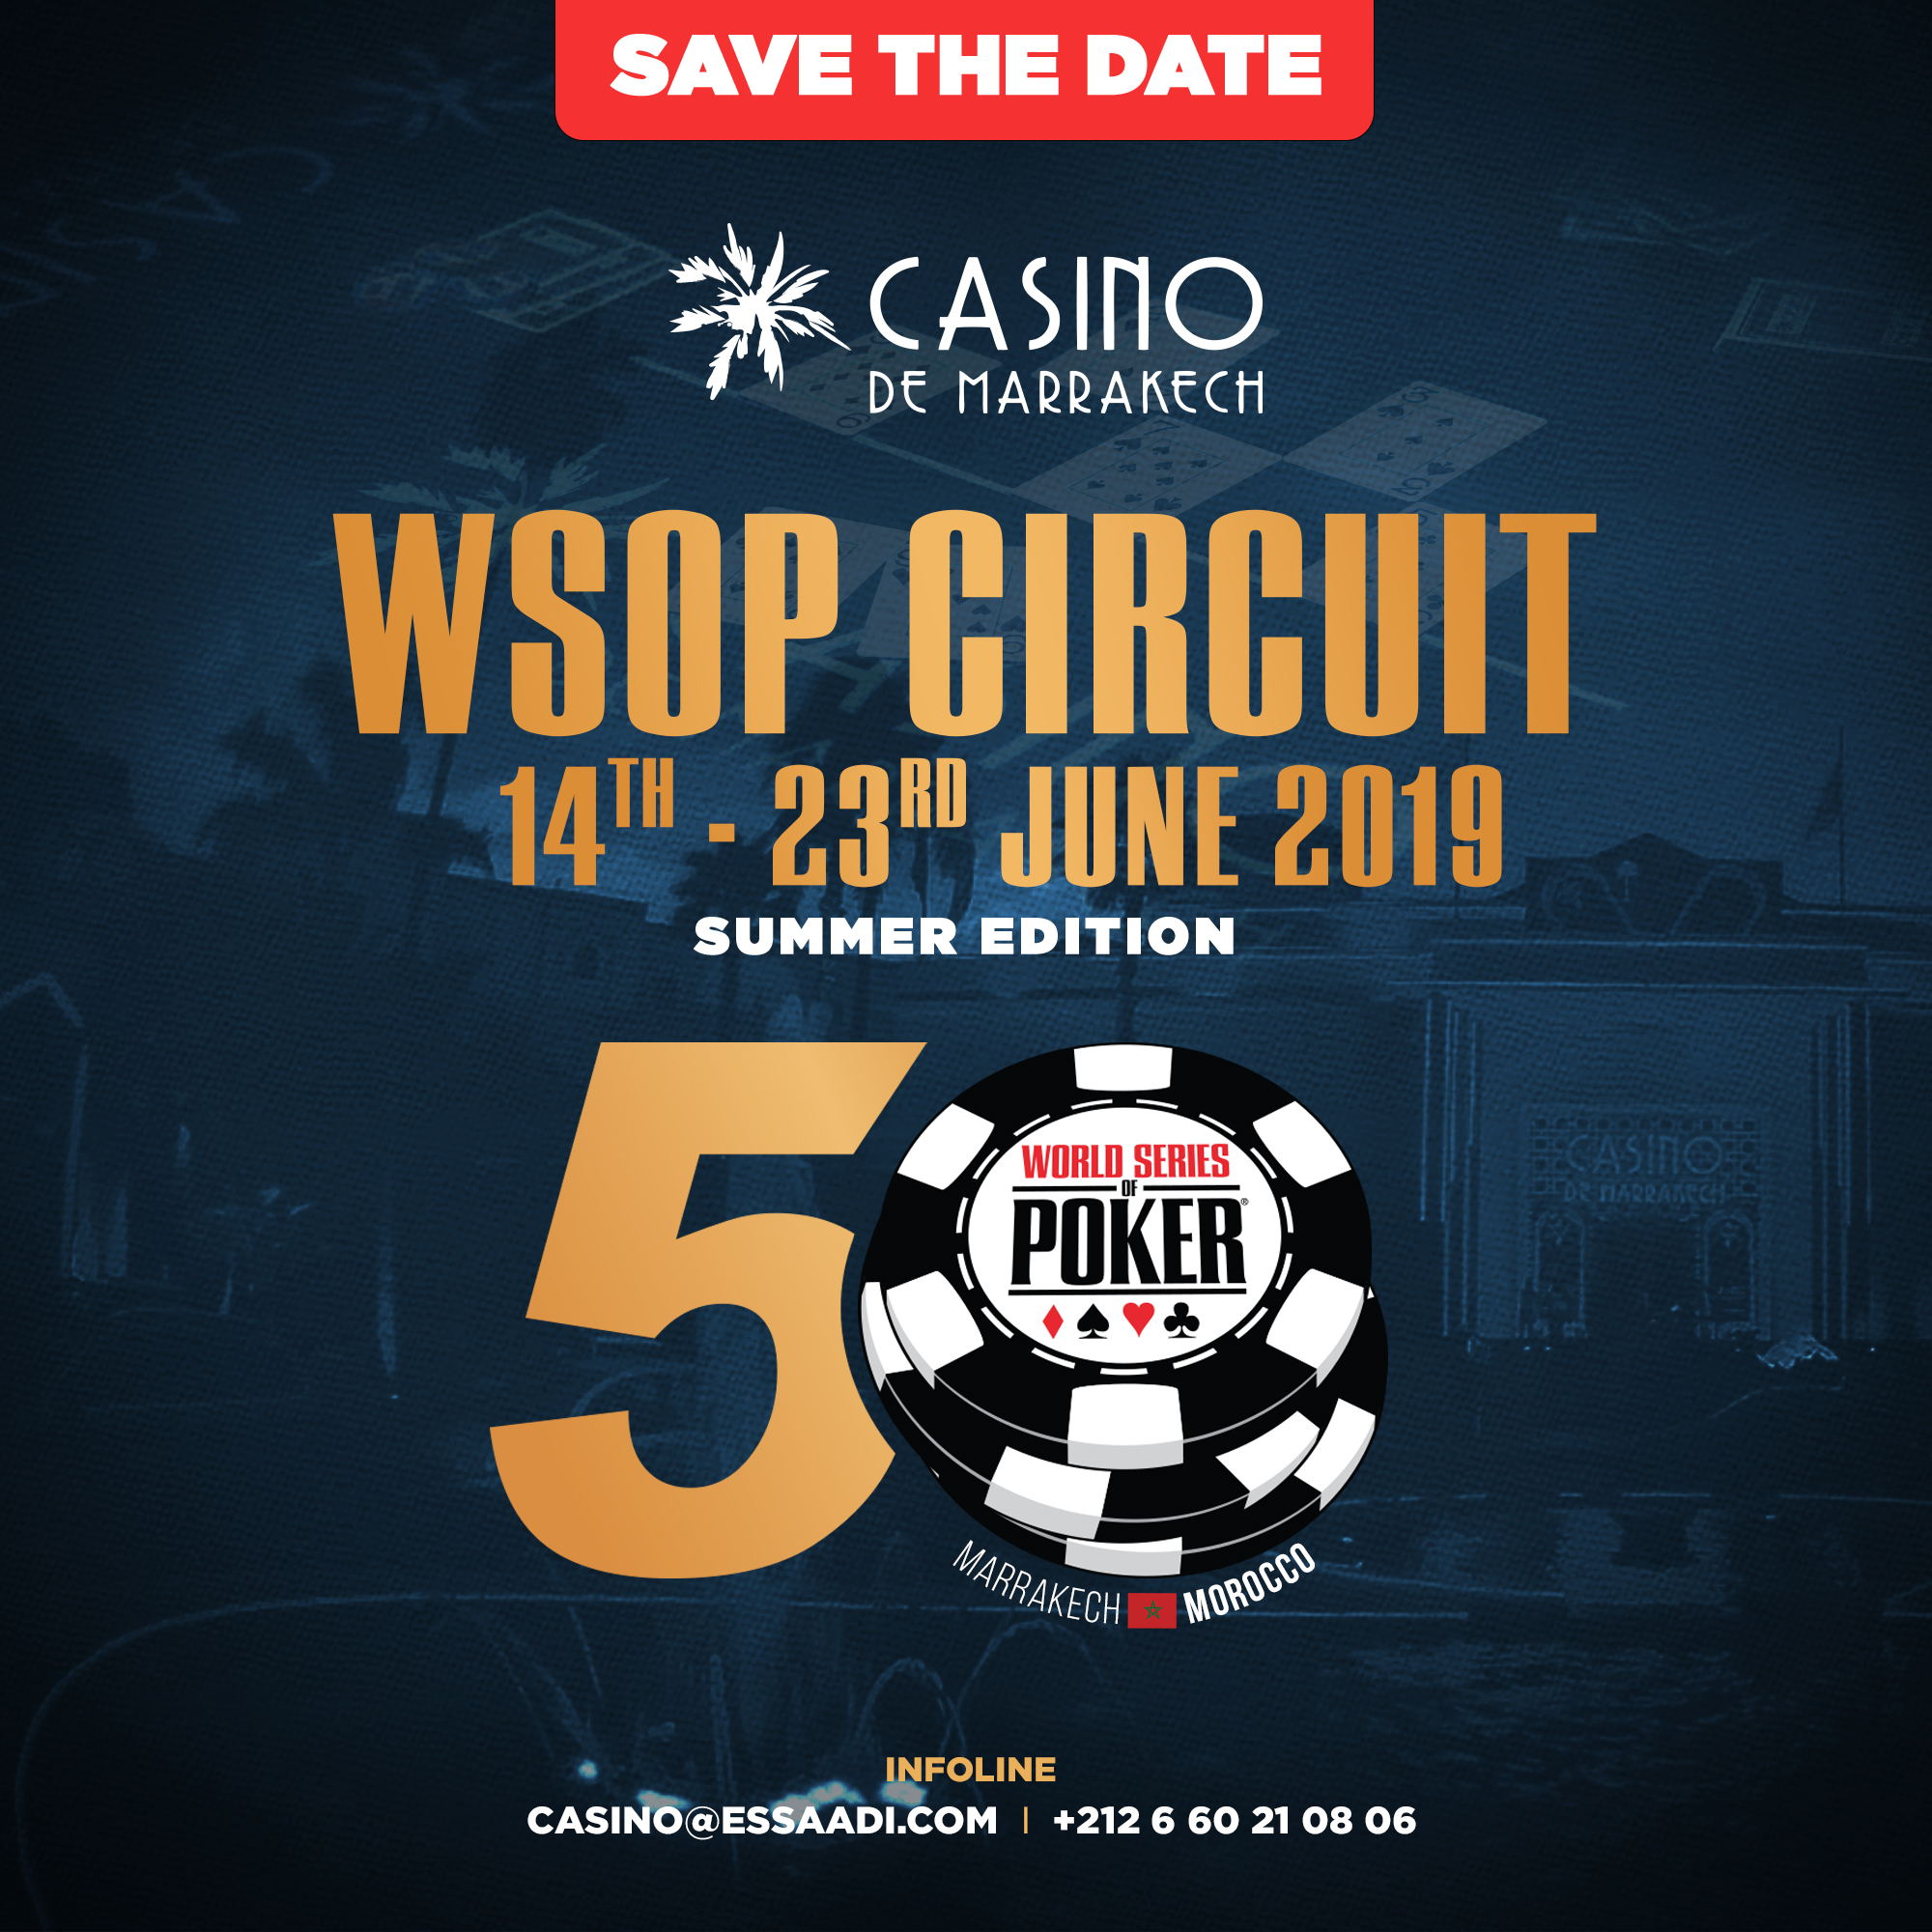 The World Series of Poker come back to Marrakesh from June 14th to June 23rd 2019.